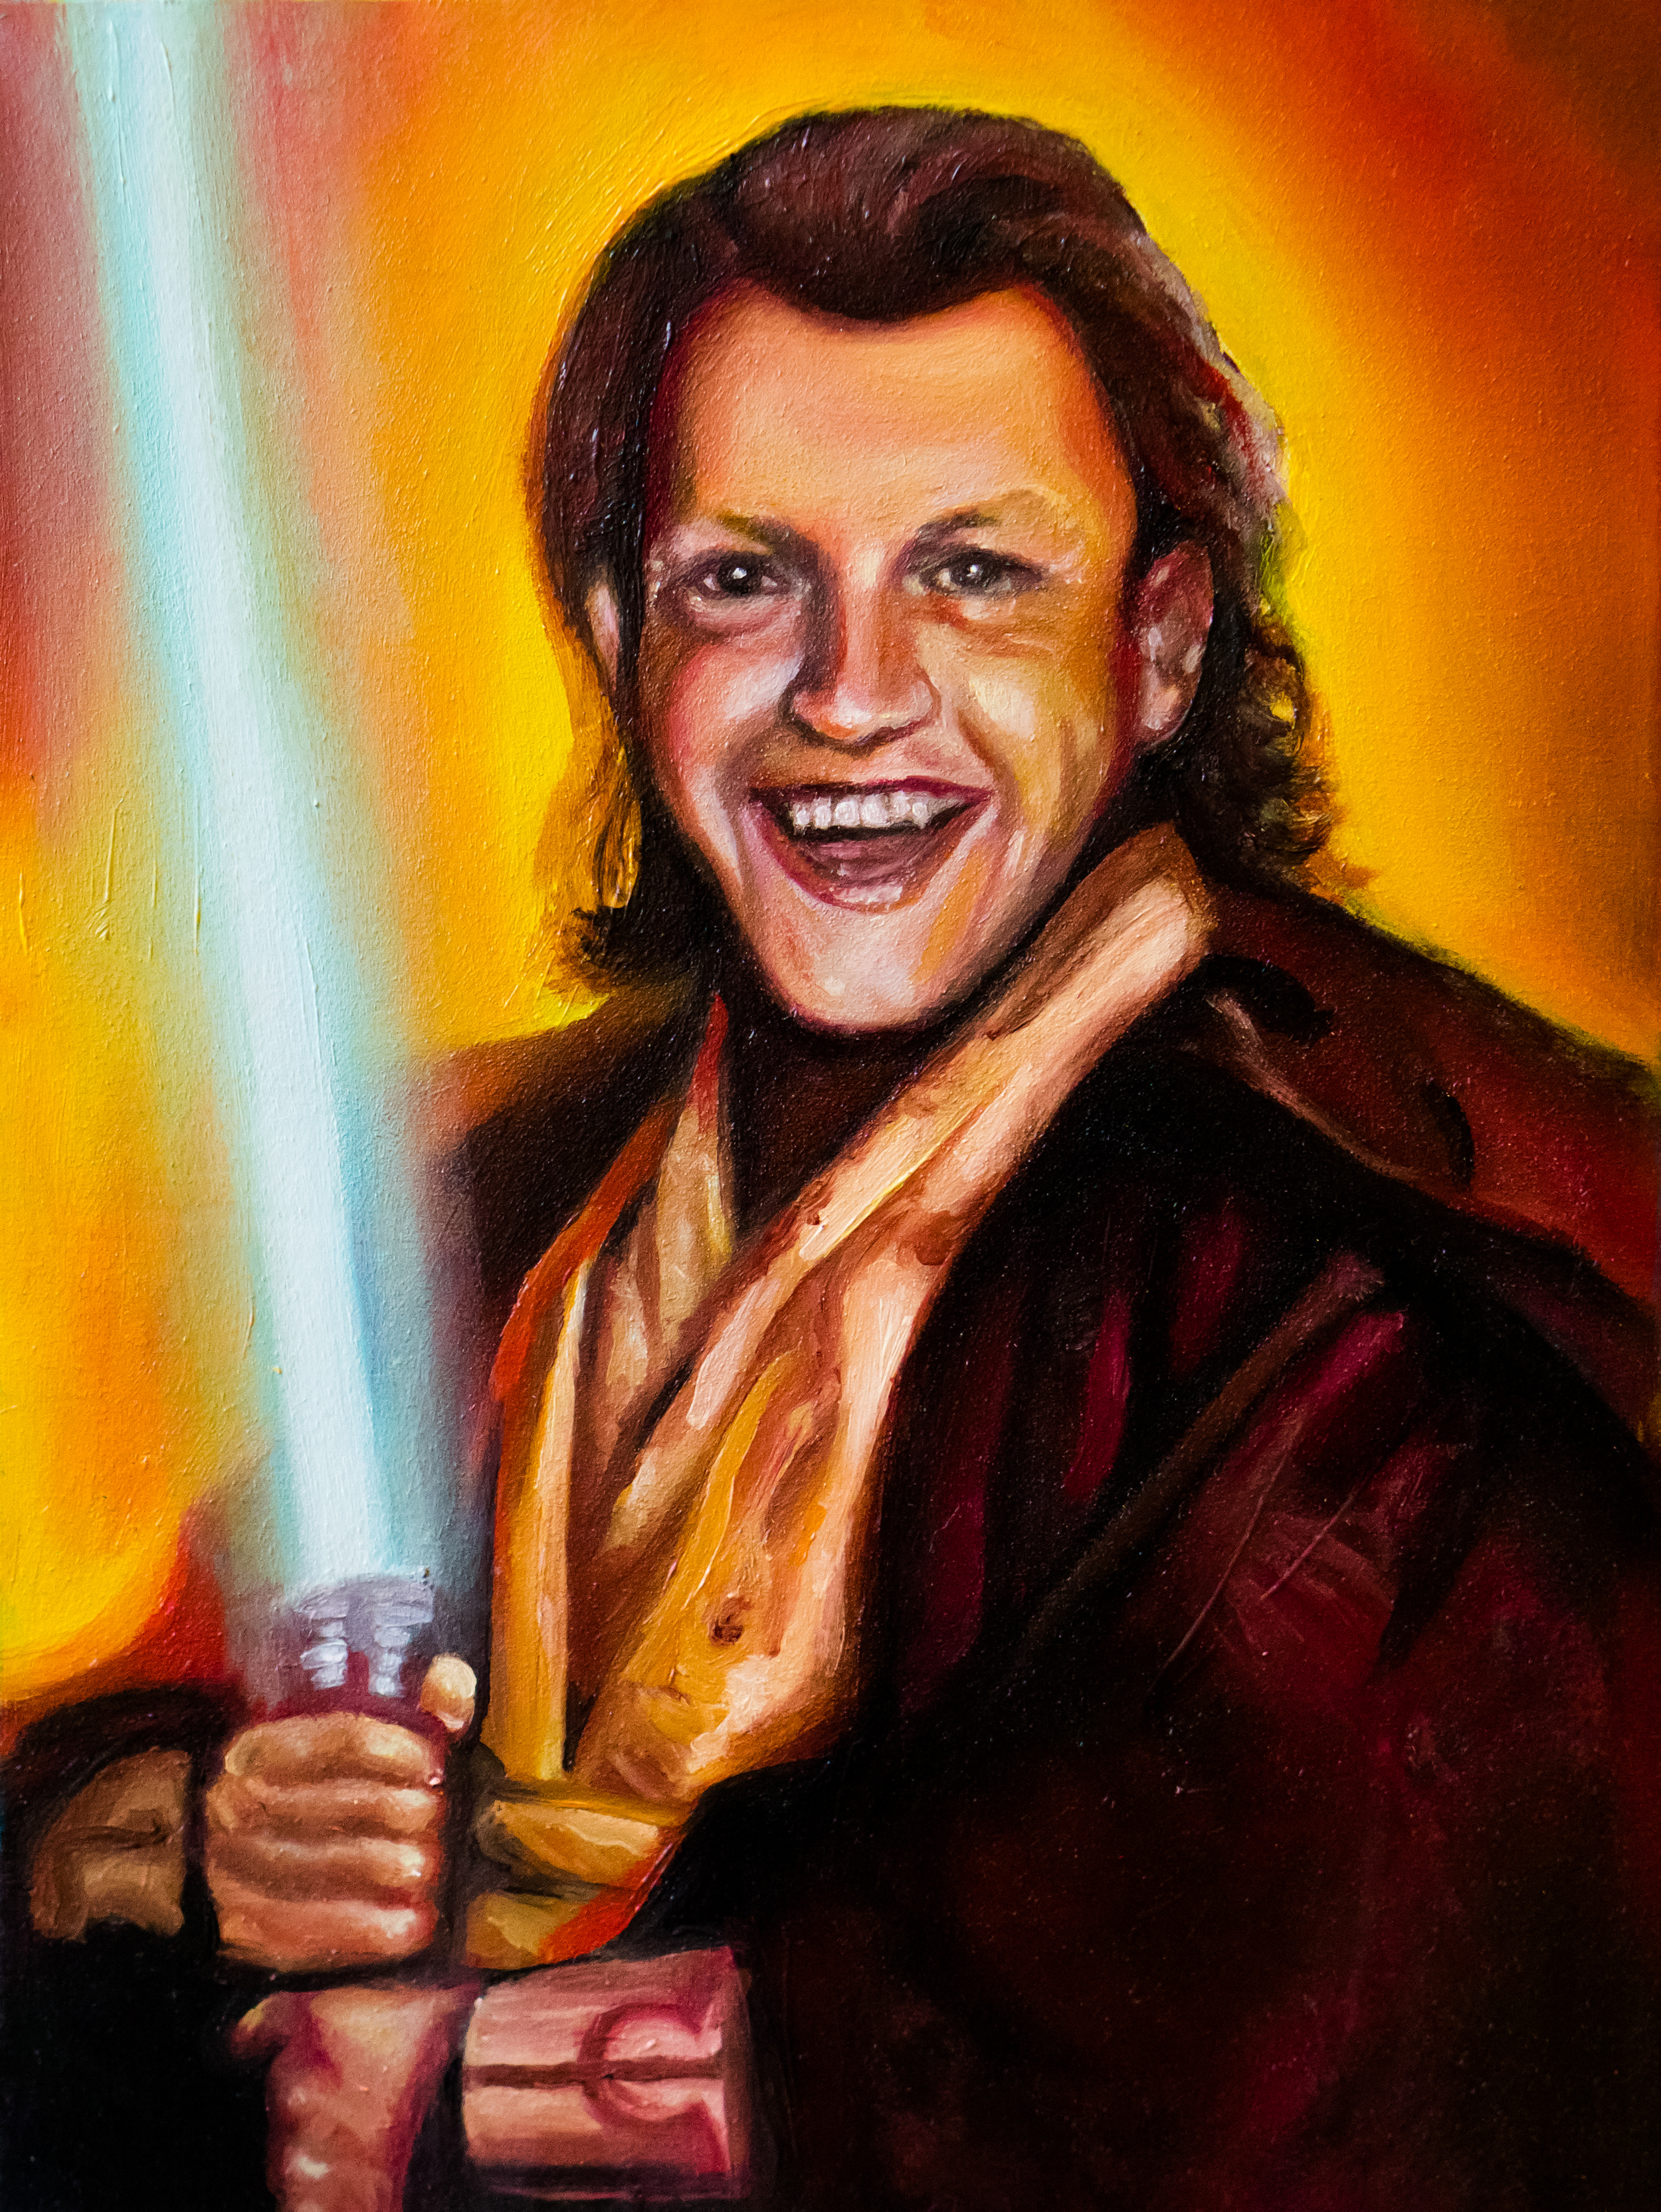 """Zetts Kenobi""- Oil on Wood, 6x8"""